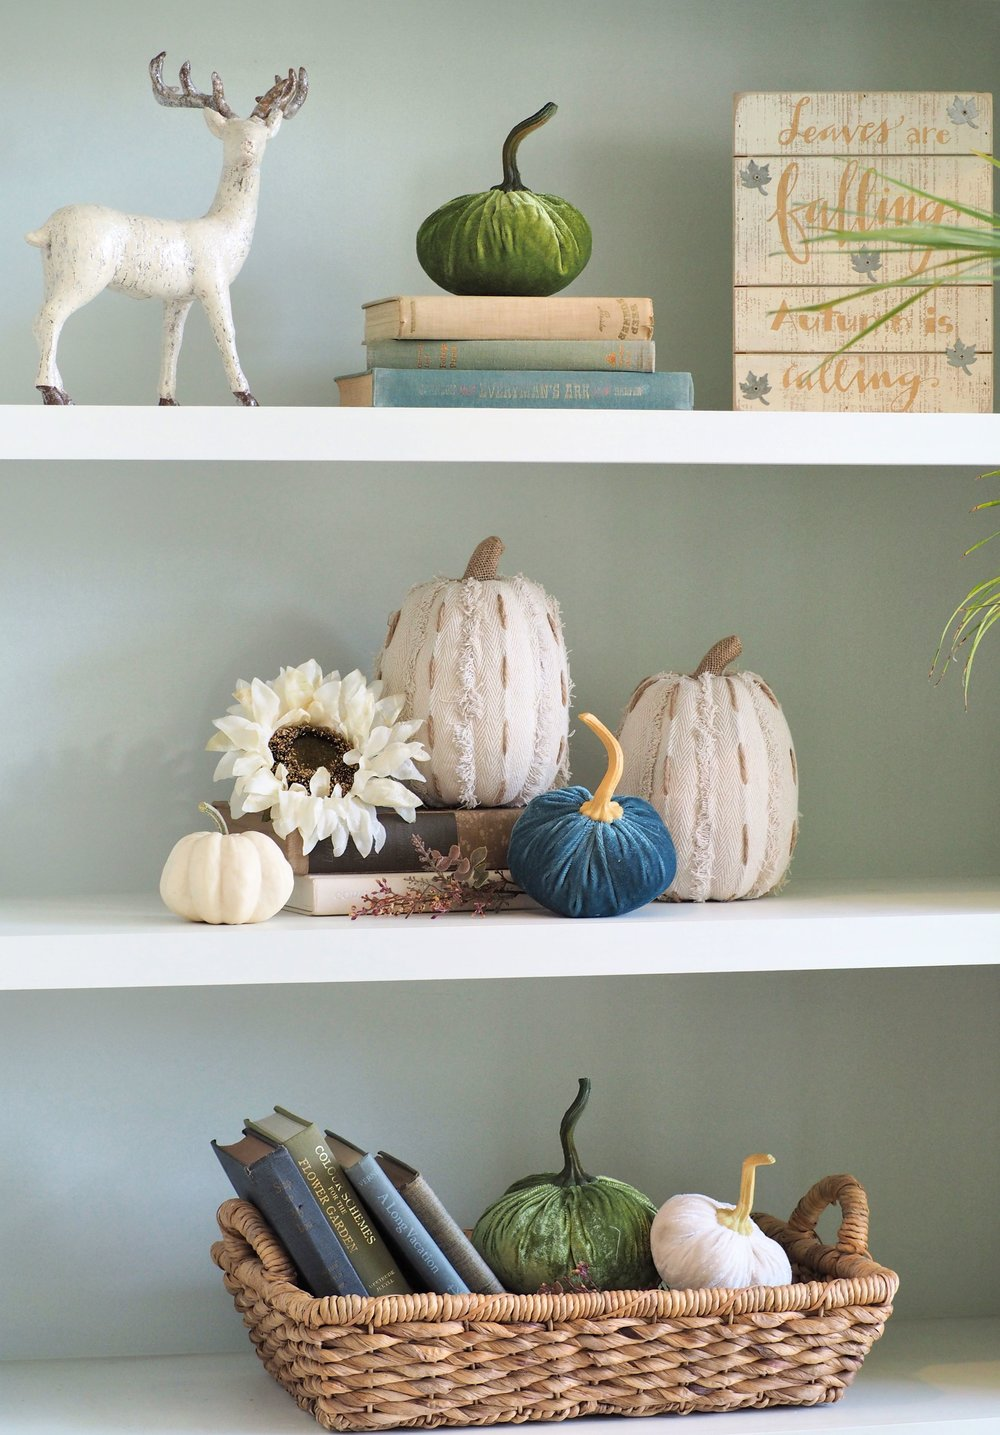 The built-ins were decorated completely neutral in September but have since jumped on the bandwagon with pops of color. The velvet pumpkins are going strong again this year and since I failed to purchase any last year, I finally found a few that were the most perfect colors for my home. I found mine at Marshall's and Home Goods. This wicker basket was purchased at Target last summer 2016. The deer is a favorite of mine and it actually has sparkle on it that is not visible in this photo. He was found at a local boutique here in town. The tall, off-white fabric pumpkins were found at Home Goods and I'm thinking they had an abundance of them because I've been seeing them around Instagram and a couple friends have mentioned having them as well. Leaves are falling, Autumn is calling ... also a Home Goods find! It's embarrassing how much I shop at that store! Are we all guilty of that? I sure hope so! Maybe I should expand my horizons at some point but that store is so darn handy and they always have an incredible variety of items.